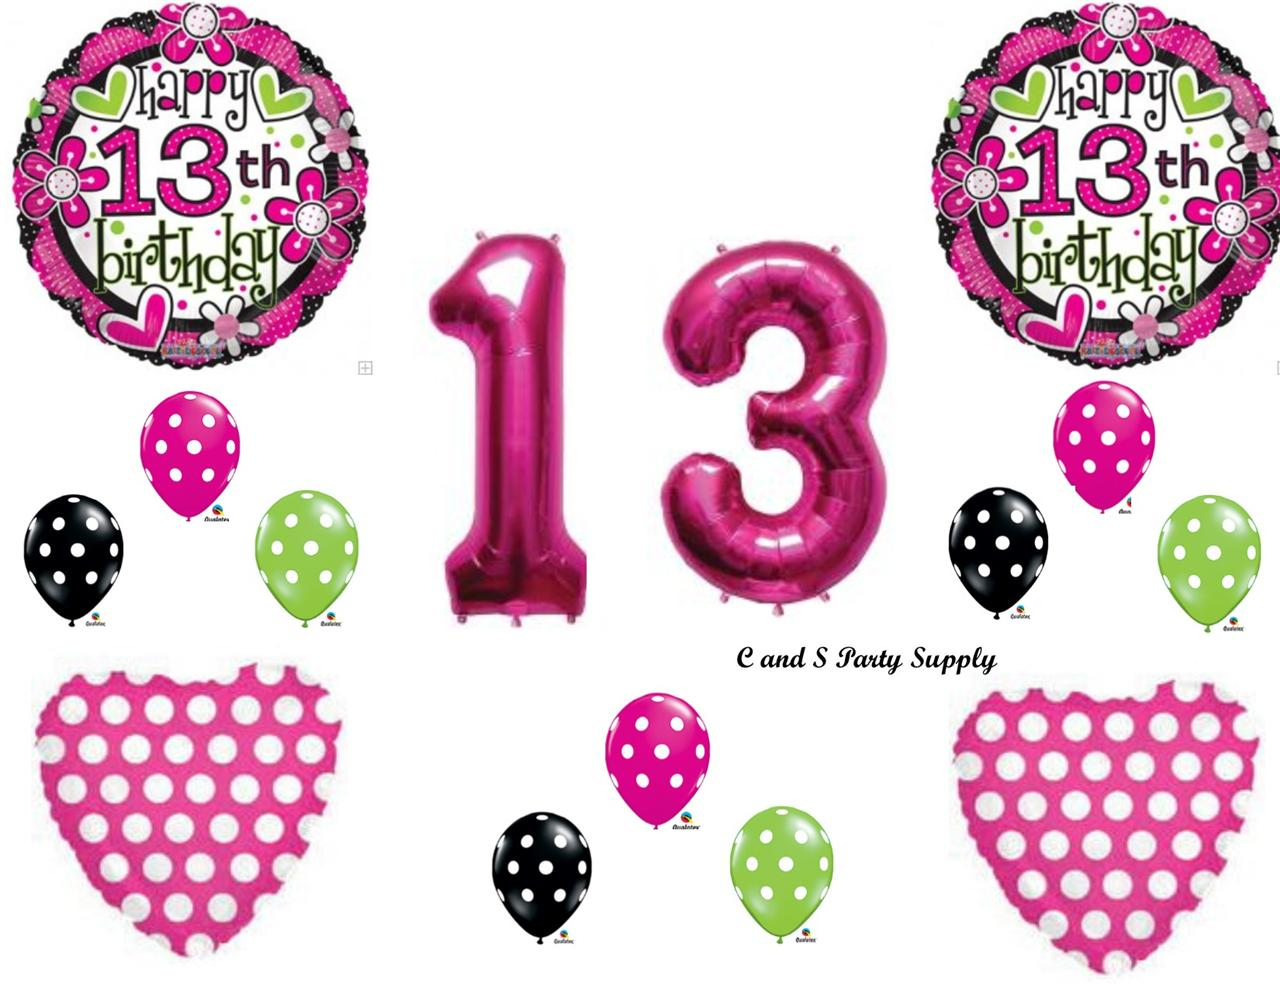 13th birthday decorations on shoppinder for 13th birthday decoration ideas